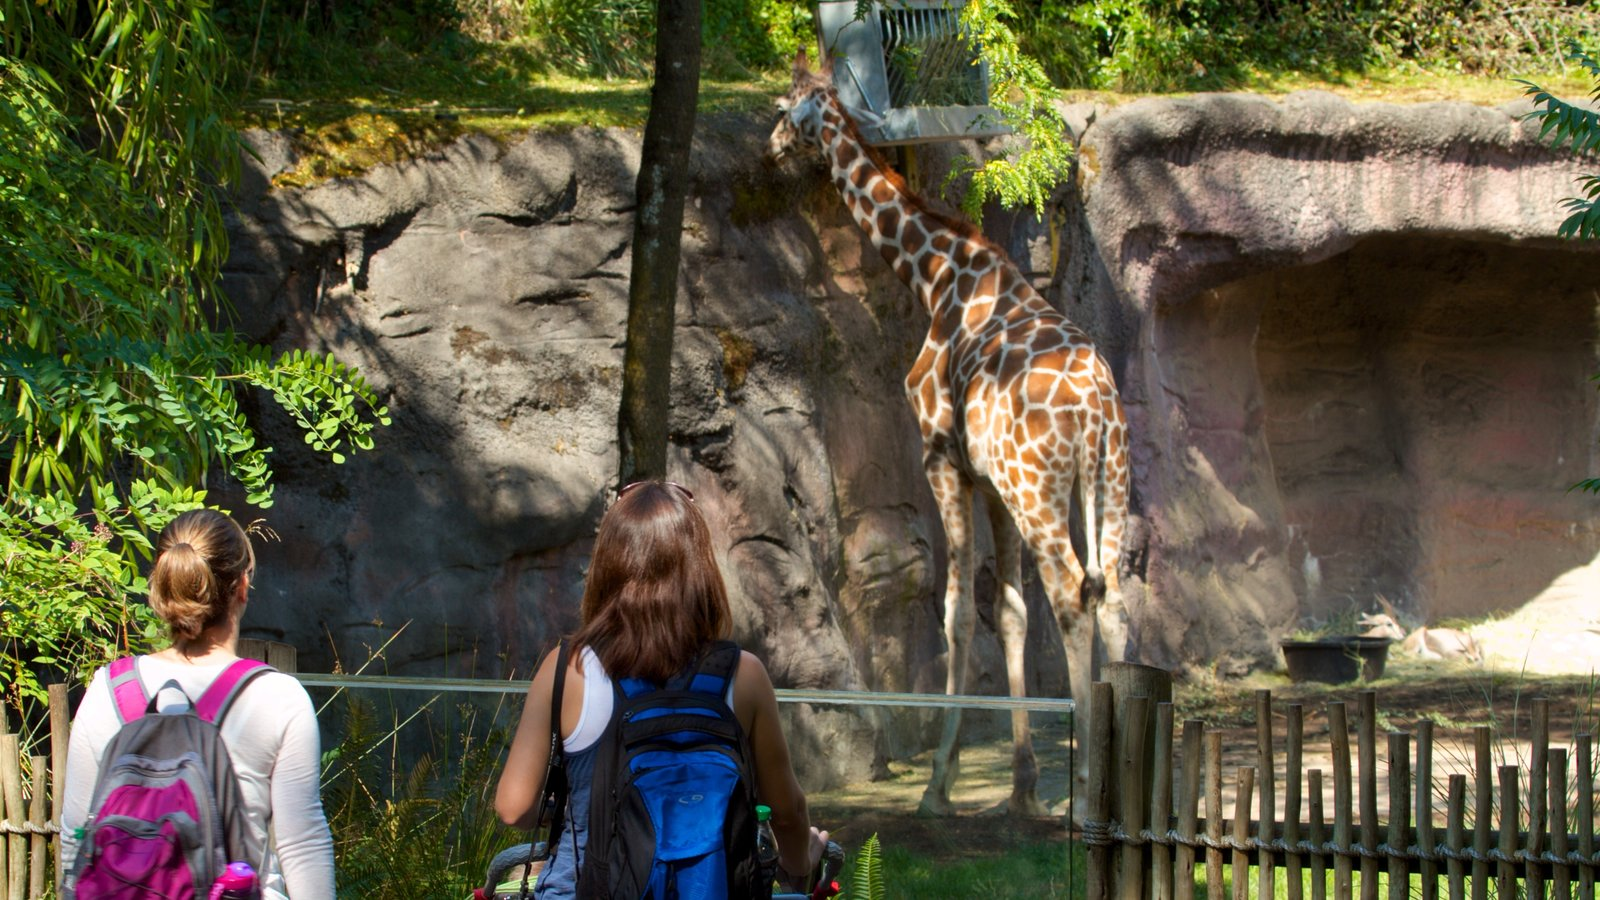 Oregon Zoo showing zoo animals and land animals as well as children